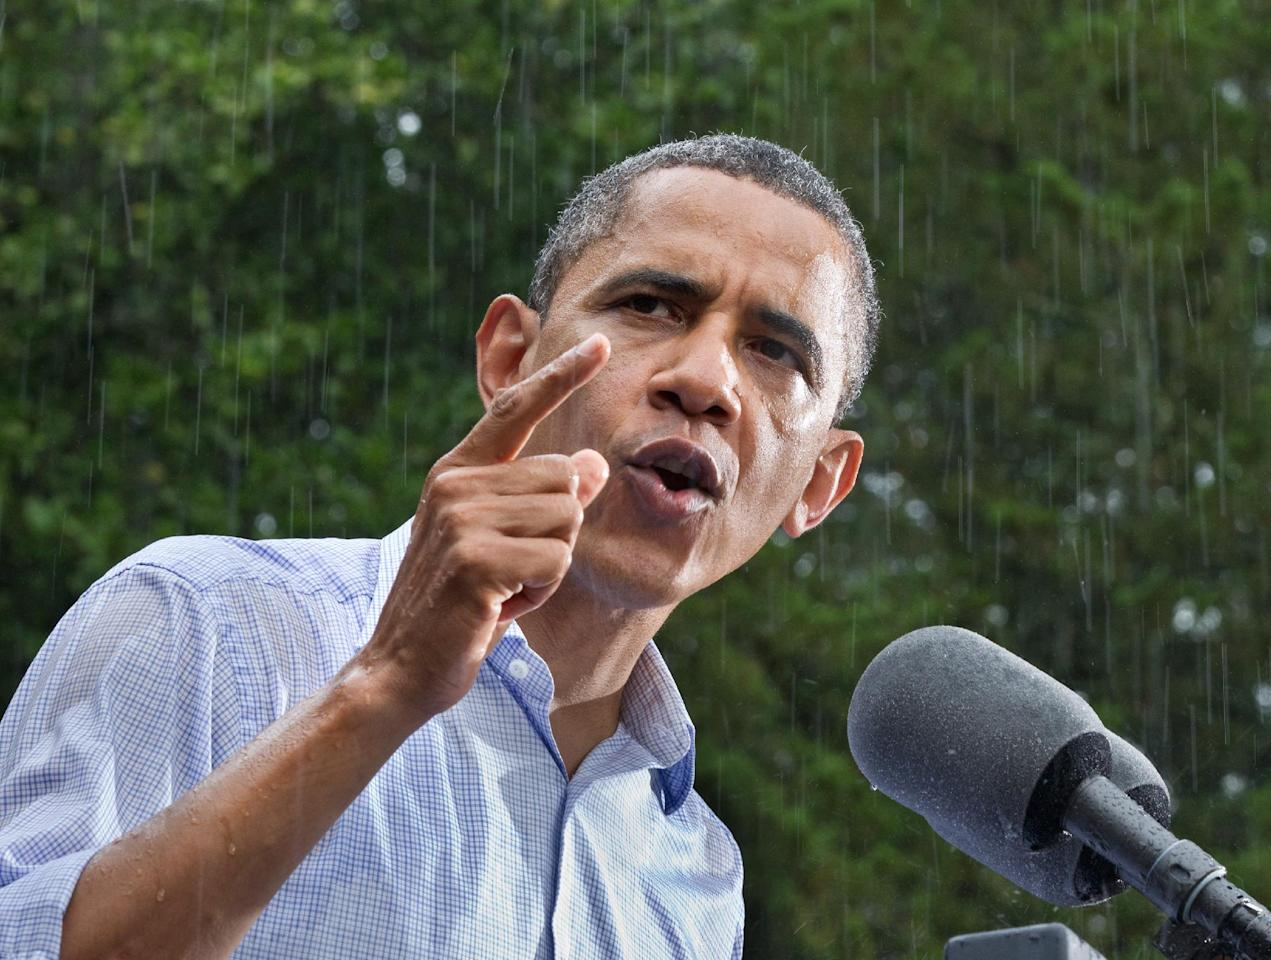 President Barack Obama campaigns despite the pouring rain at the historic Walkerton Tavern & Gardens in Glen Allen, Va., near Richmond, Saturday, July 14, 2012. It is in the Congressional district represented by Republican House Majority Leader Eric Cantor, R-Va., a key county in a crucial swing state of the presidential election. (AP Photo/J. Scott Applewhite)